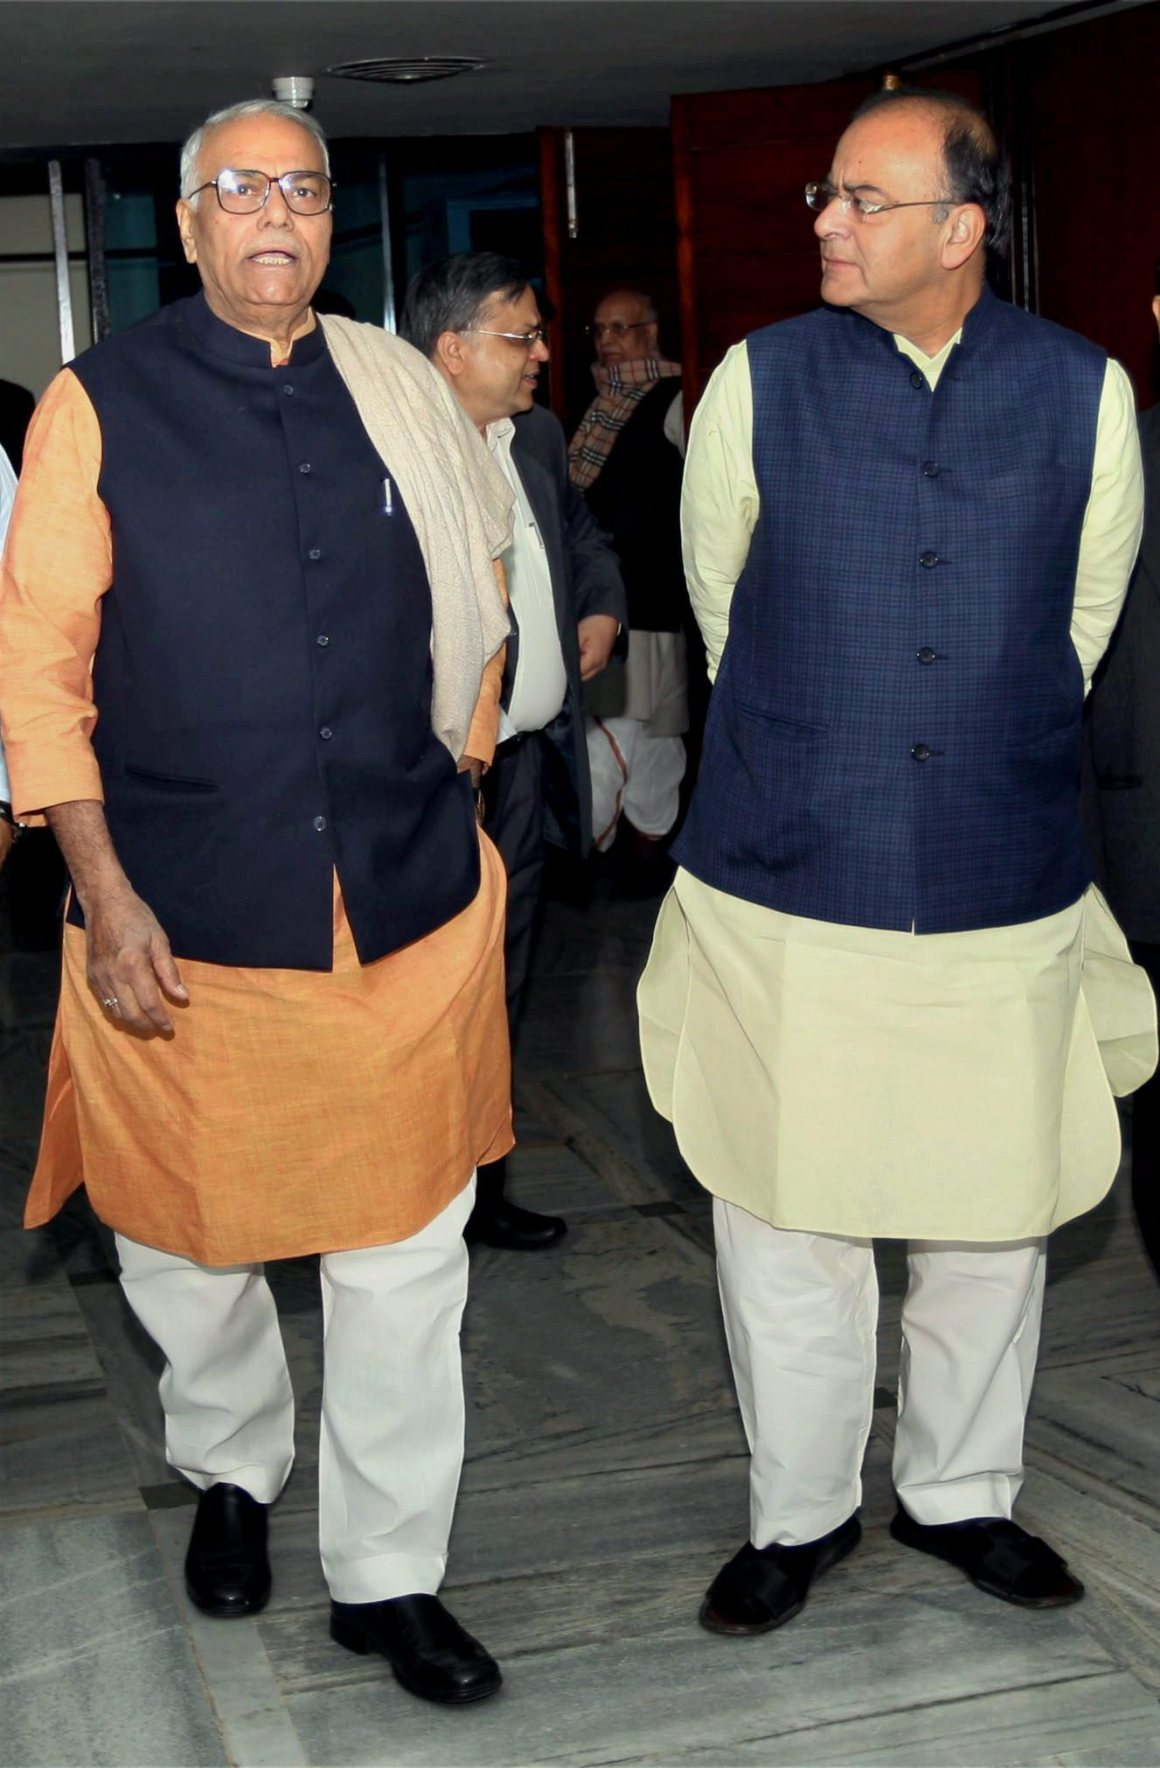 New Delhi : File photo of senior BJP leaders Yashwant Sinha and Arun Jaitley after a BJP Parliamentary Party meeting in New Delhi on Dec 04, 2012. Sinha on Wednesday delivered a blistering criticism of Finance Minister Arun Jaitley over the state of the economy. PTI Photo by Subhav Shukla (PTI9_28_2017_000161B)